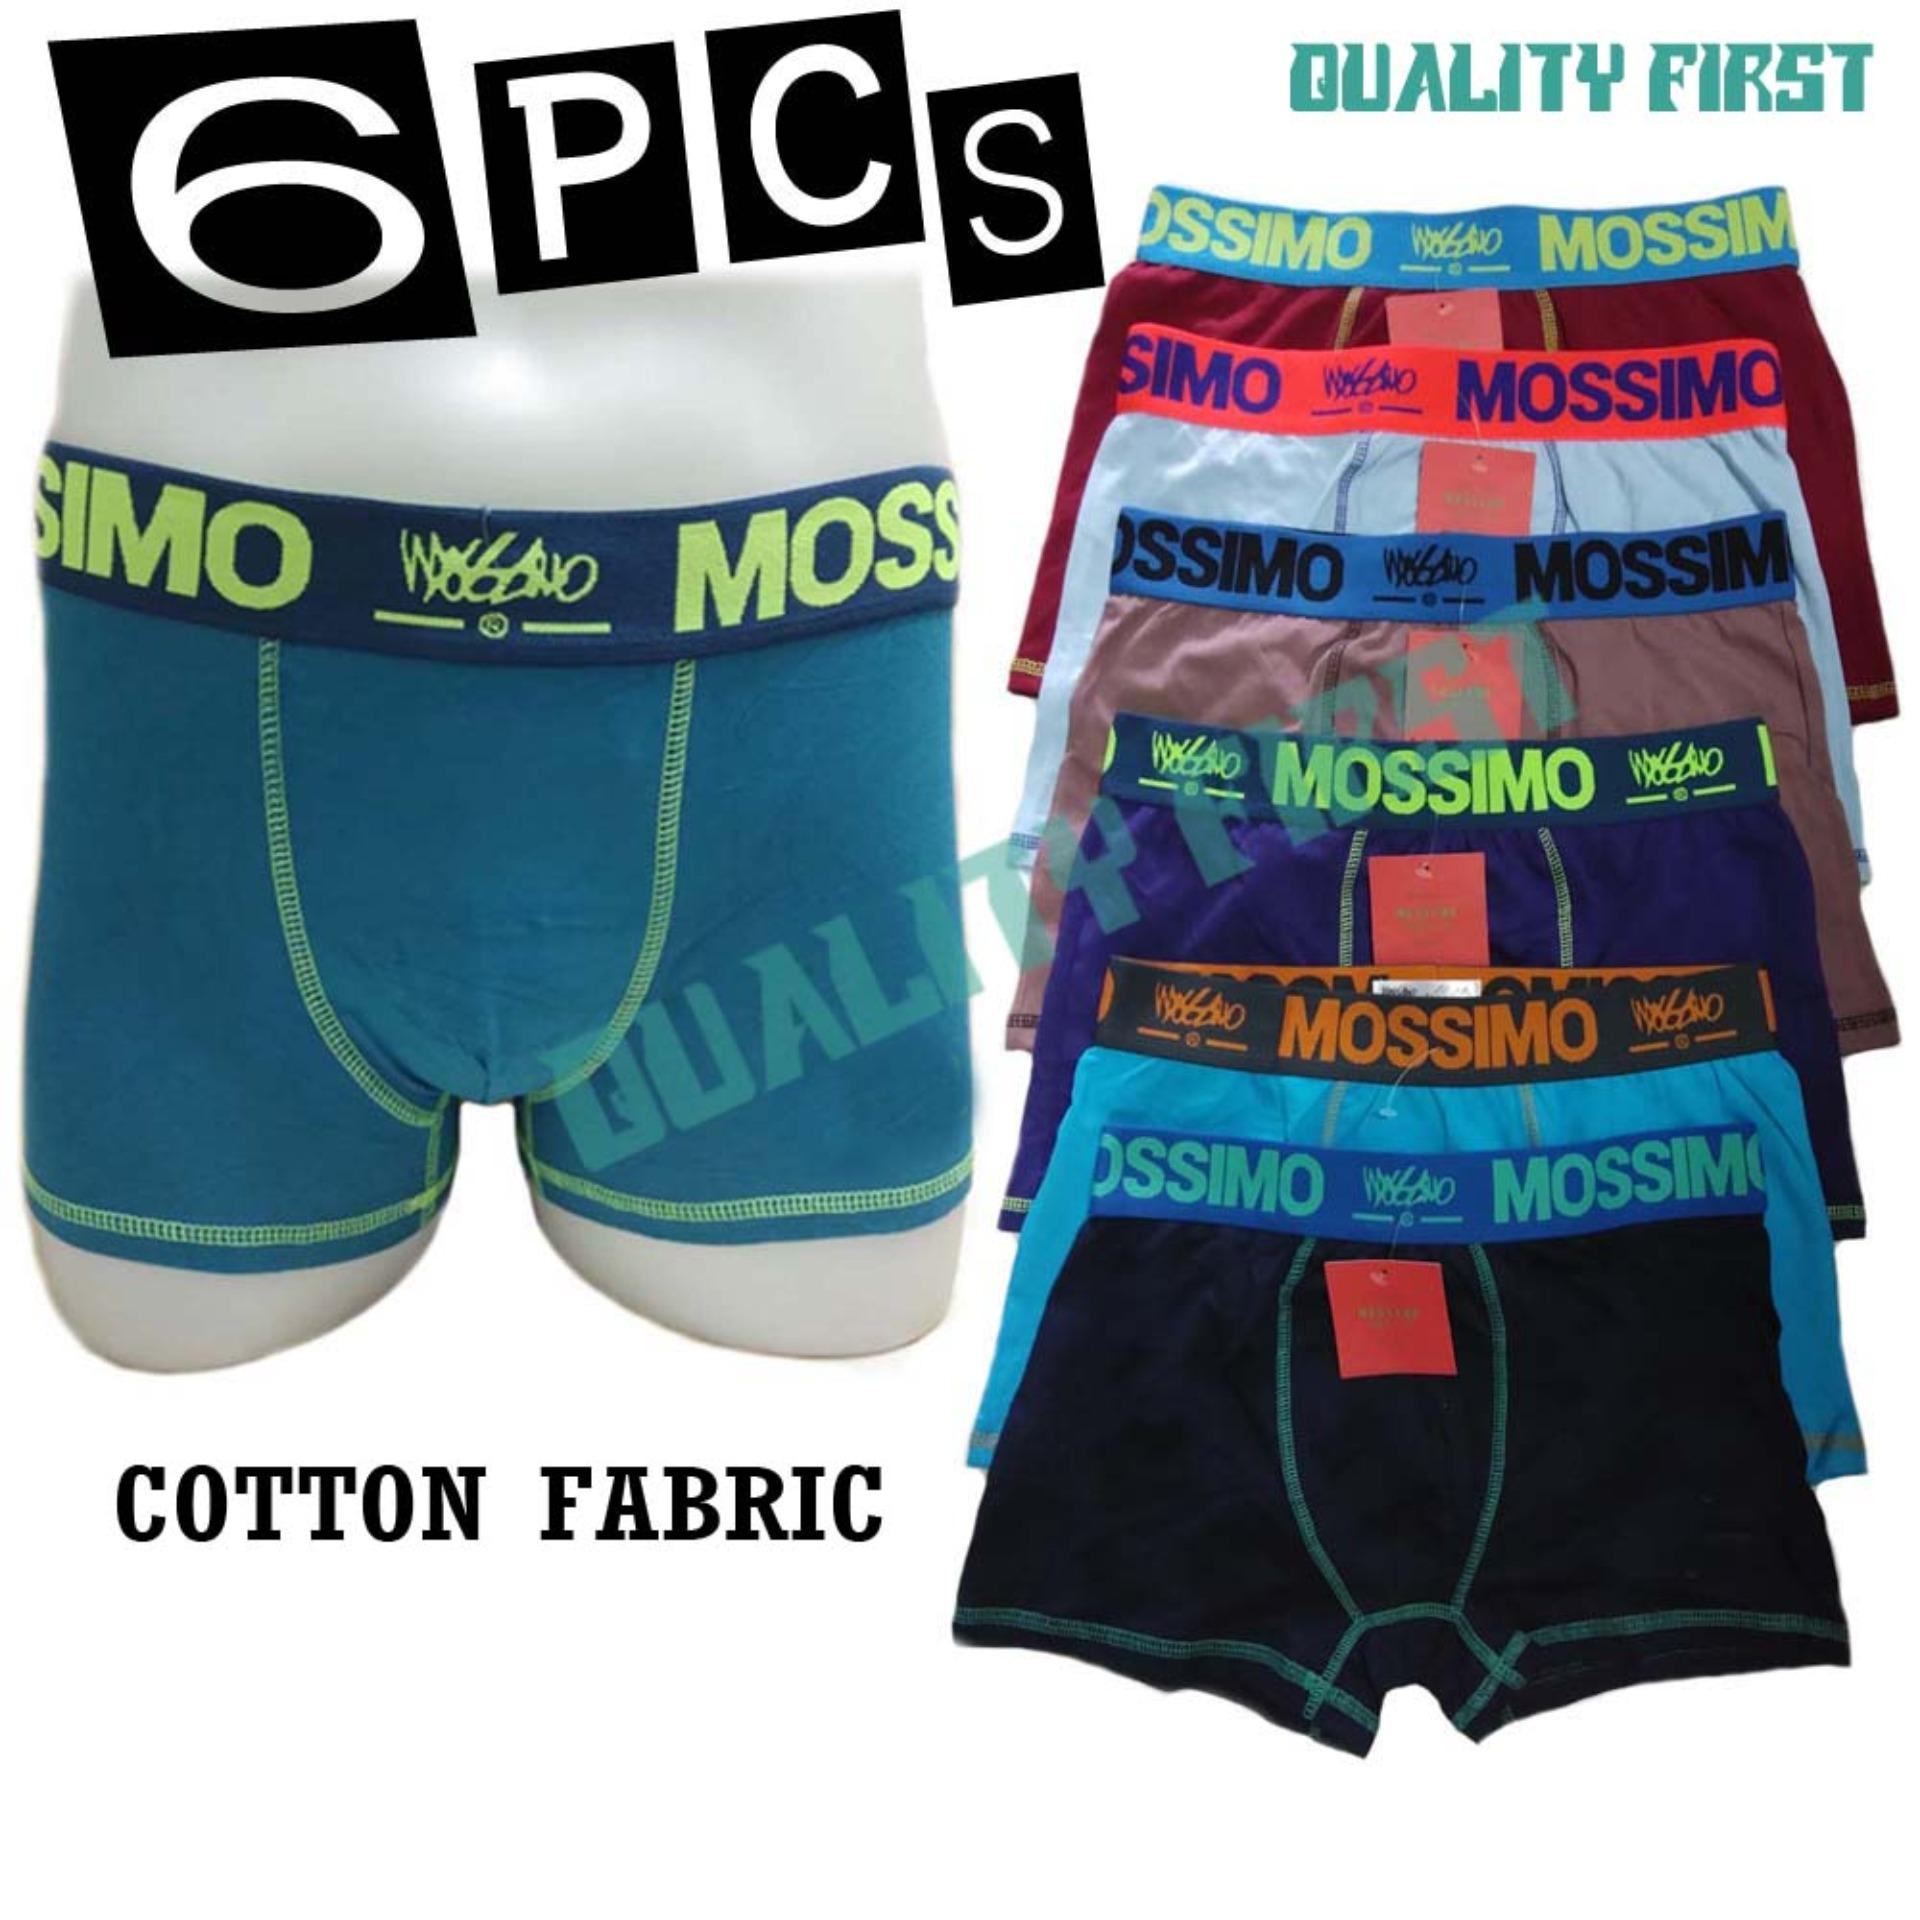 Lot Of 6 Cotton Boxer Brief For Men By Quality First.